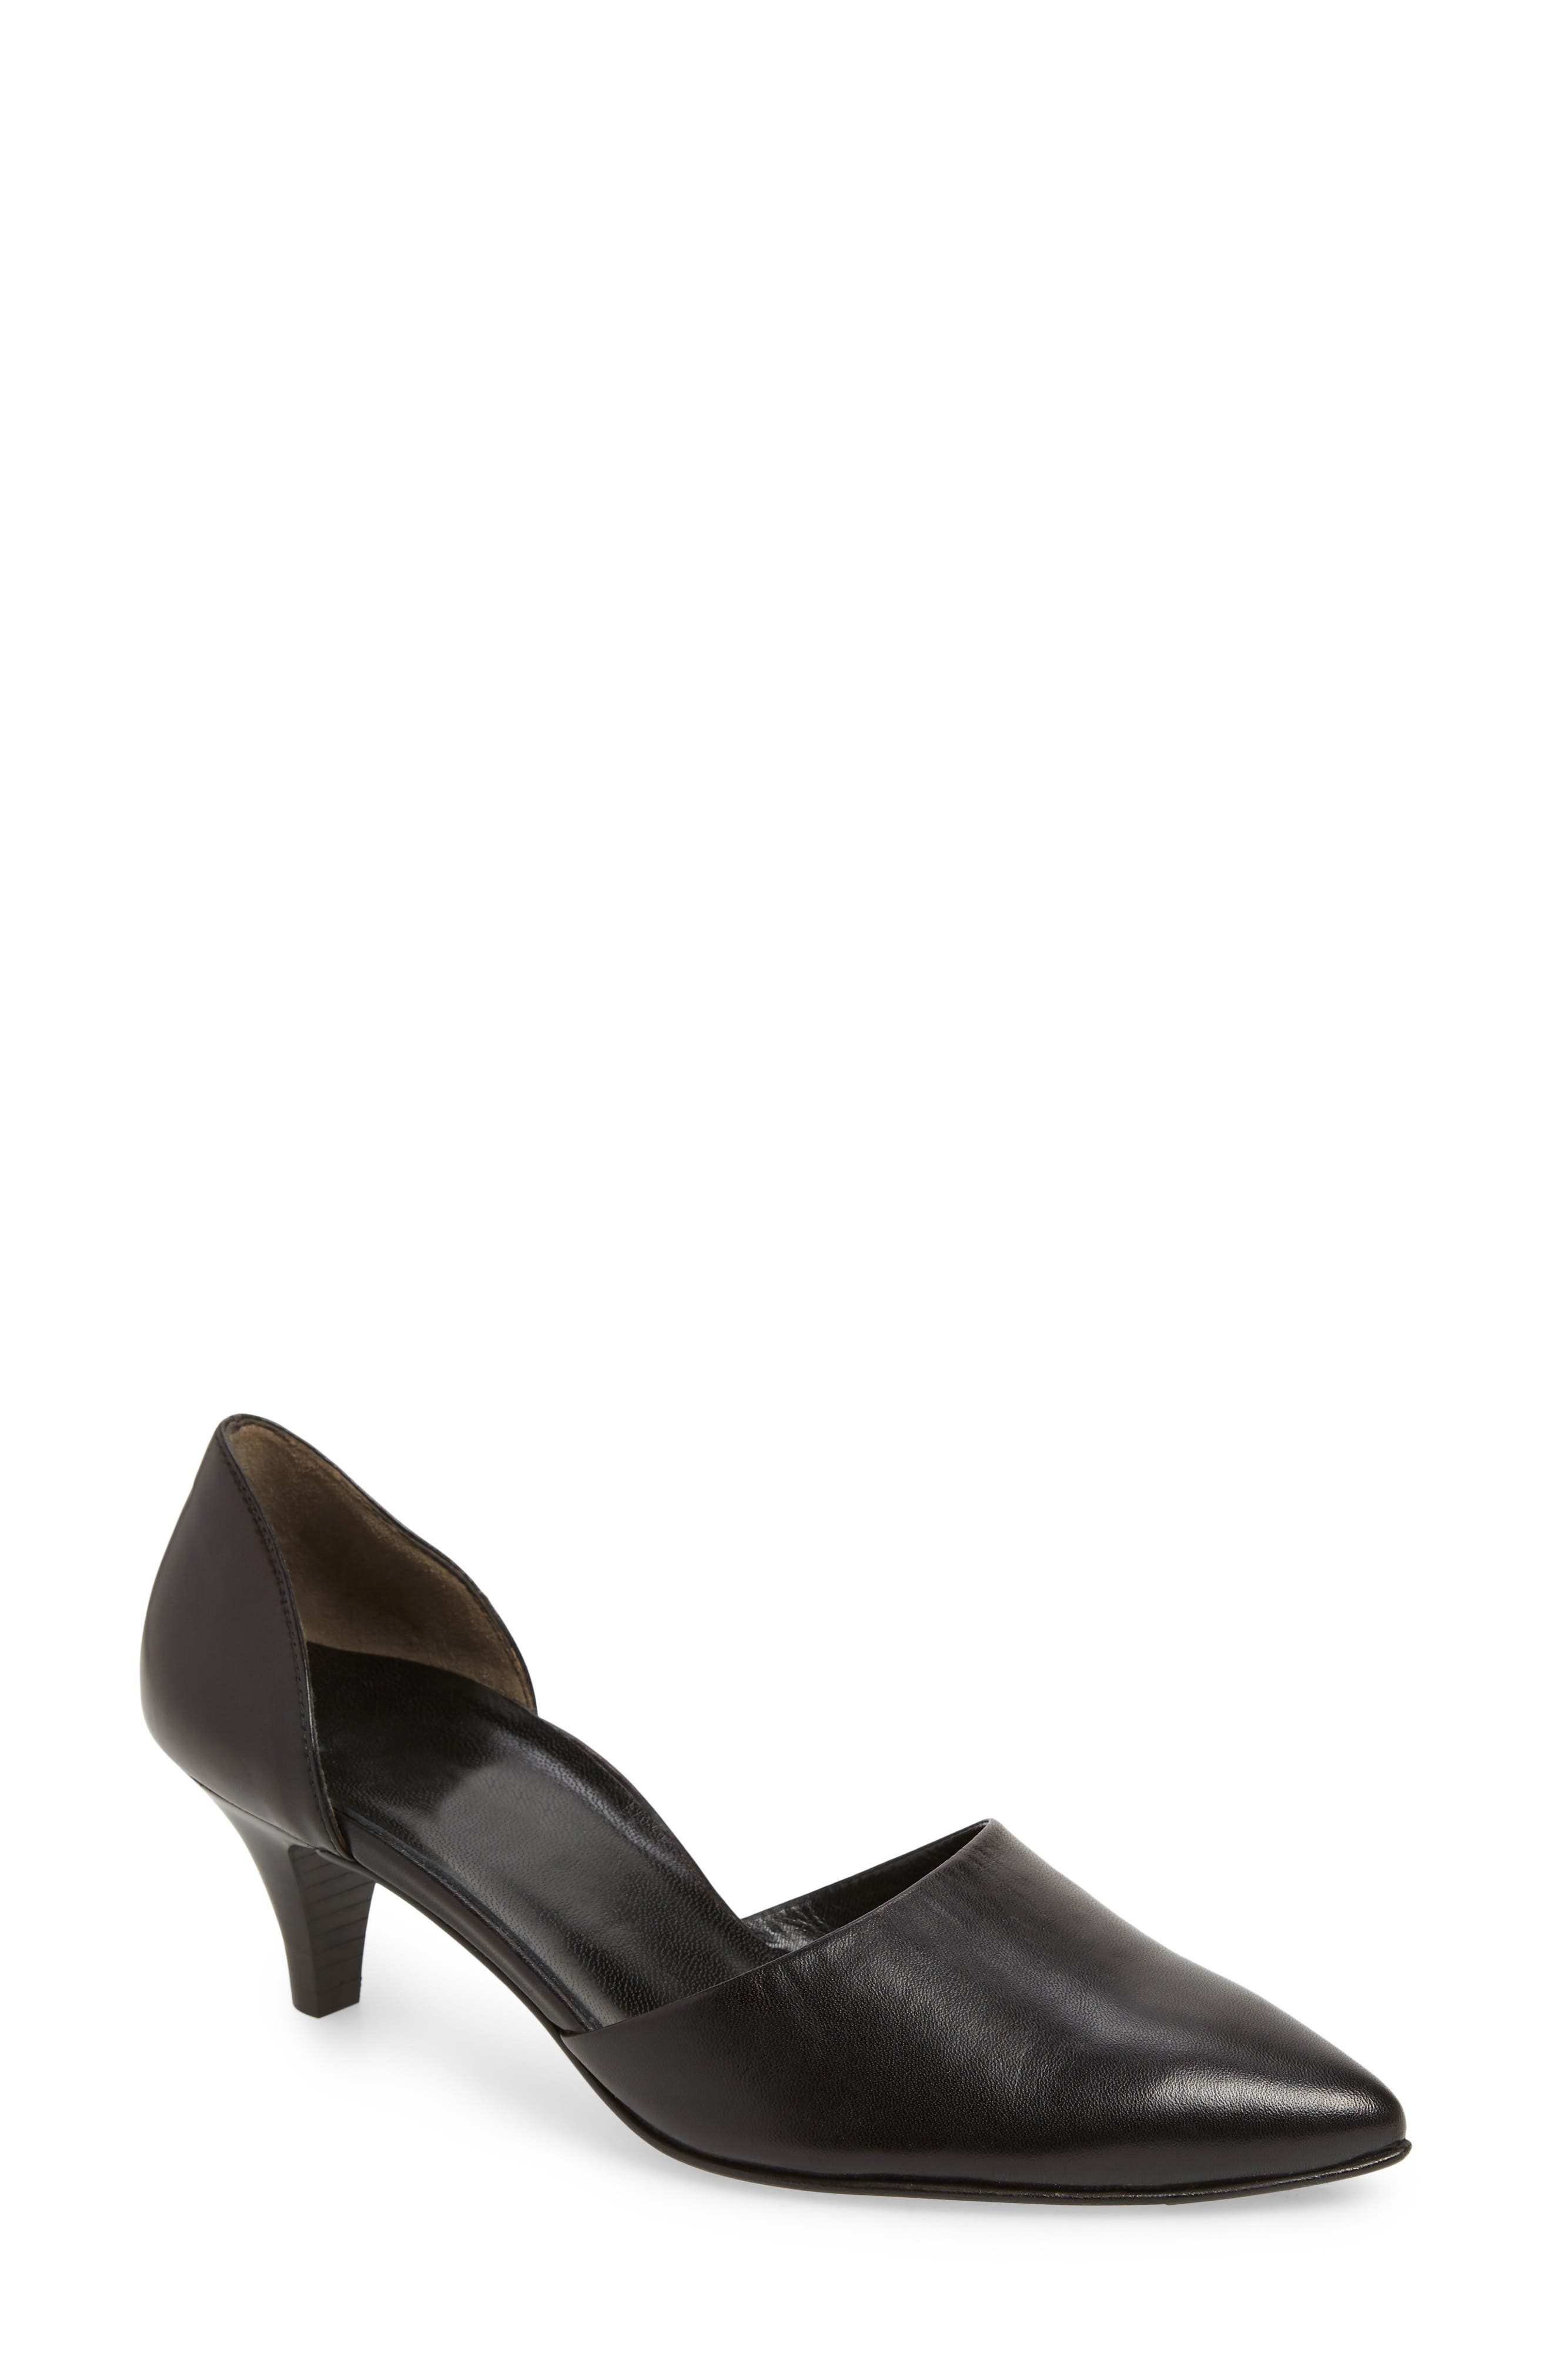 Shey Pointy Toe Pump,                         Main,                         color, BLACK LEATHER